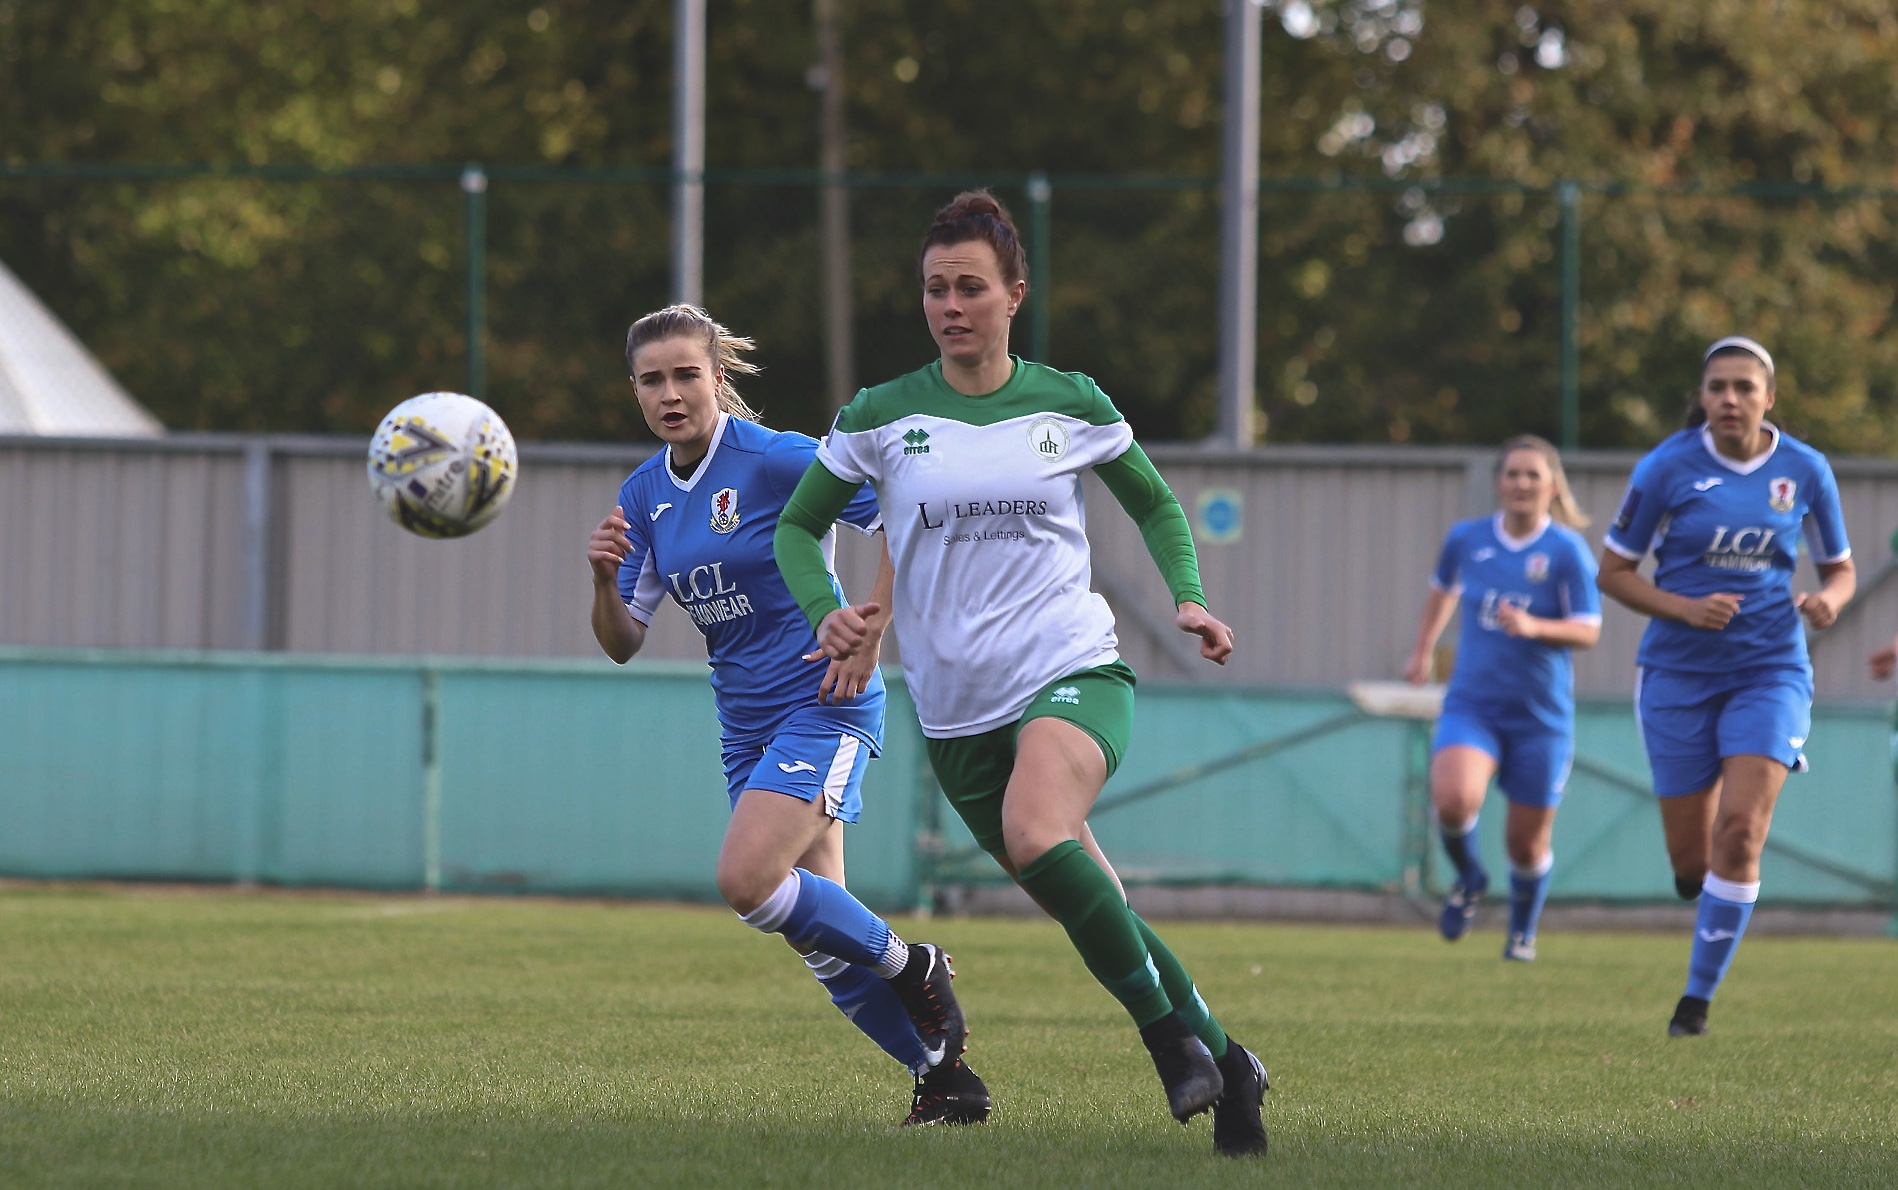 Match Report: Chichester City Ladies 1-0 Cardiff City Ladies (28.10.18)